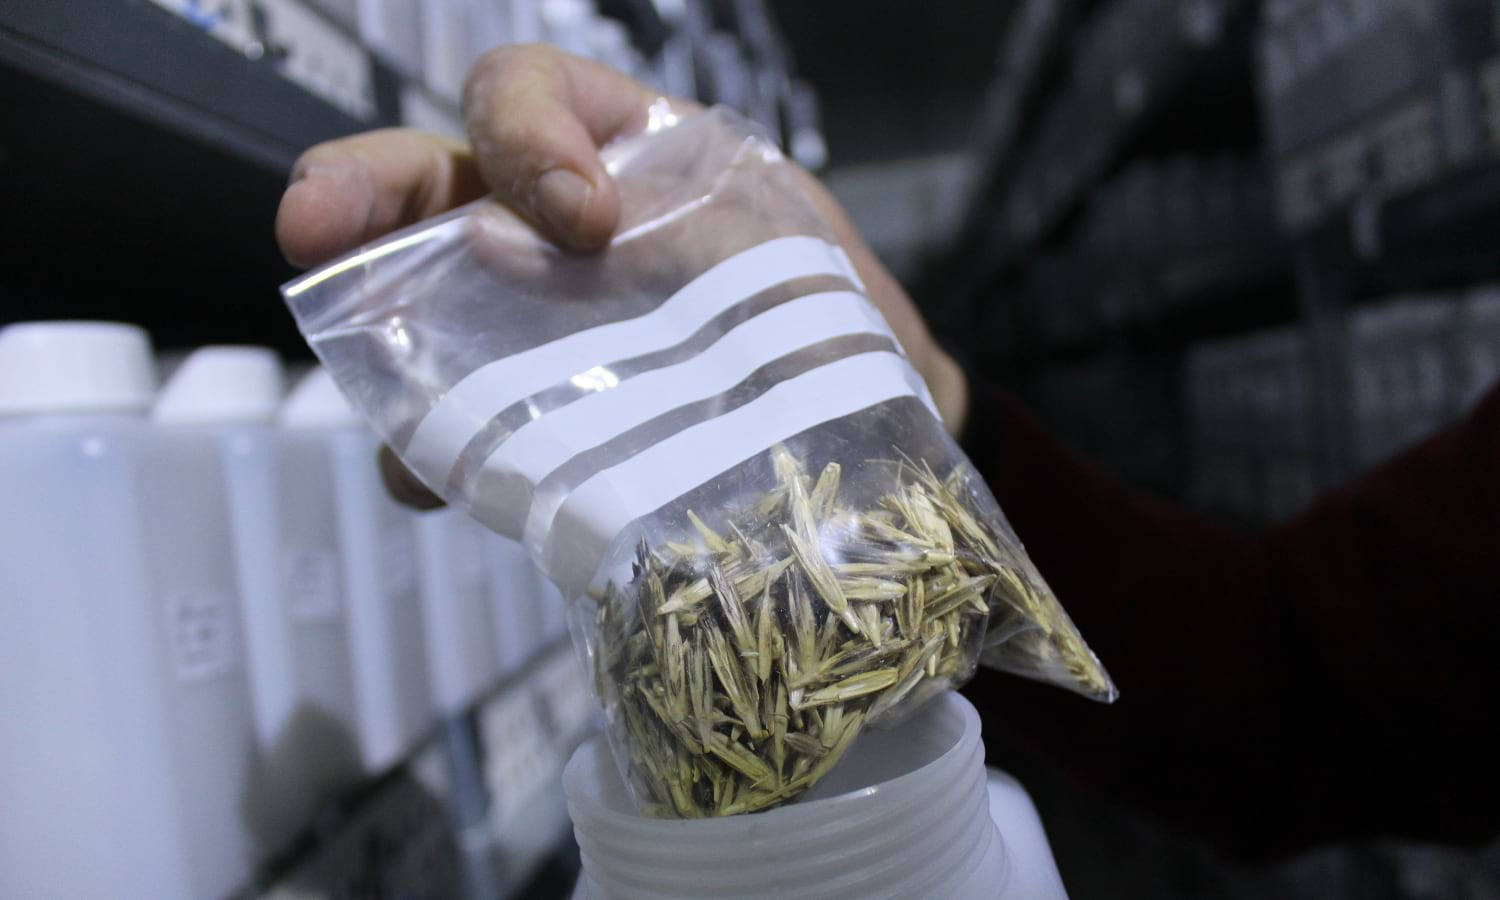 A genebank in Syria is working to keep seed diversity alive by saving over 100,000 varieties of seeds during a time of conflict.